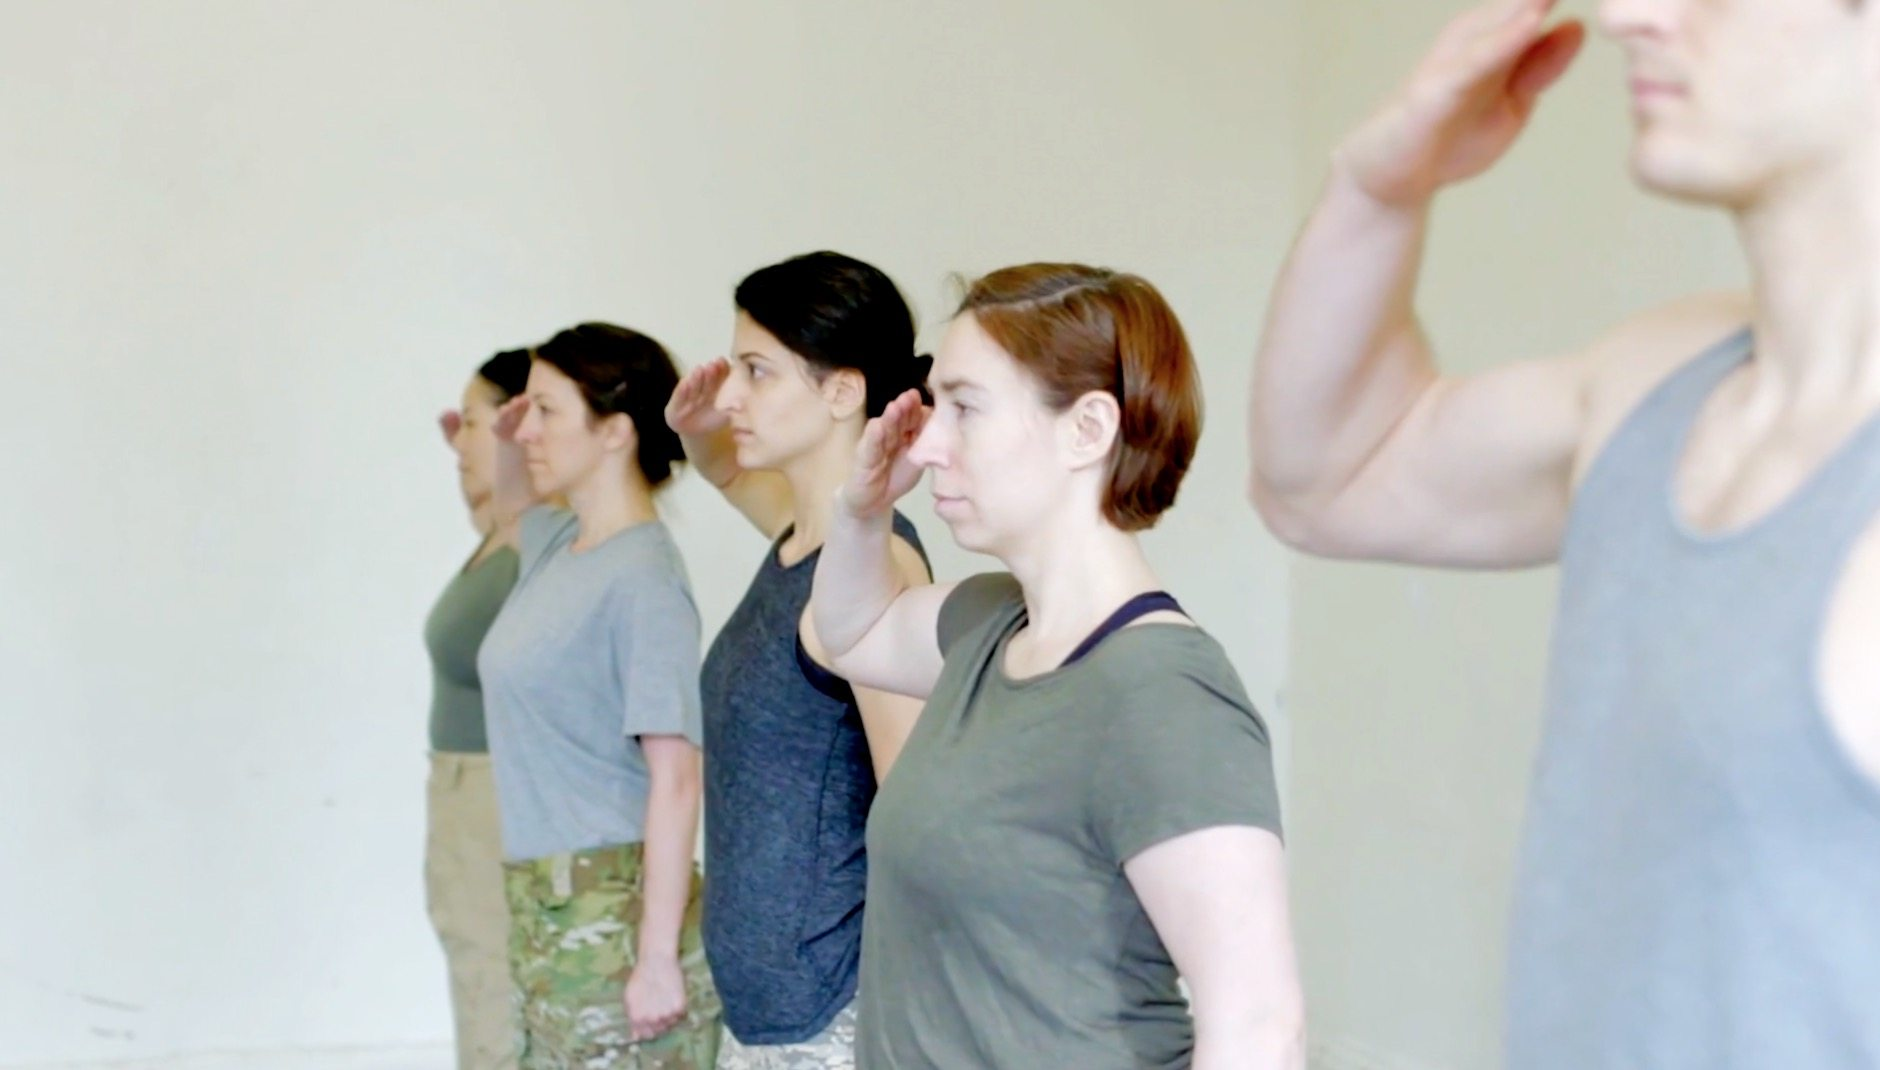 Image 'Bullet Catchers' from the Women in Combat Theatre Project